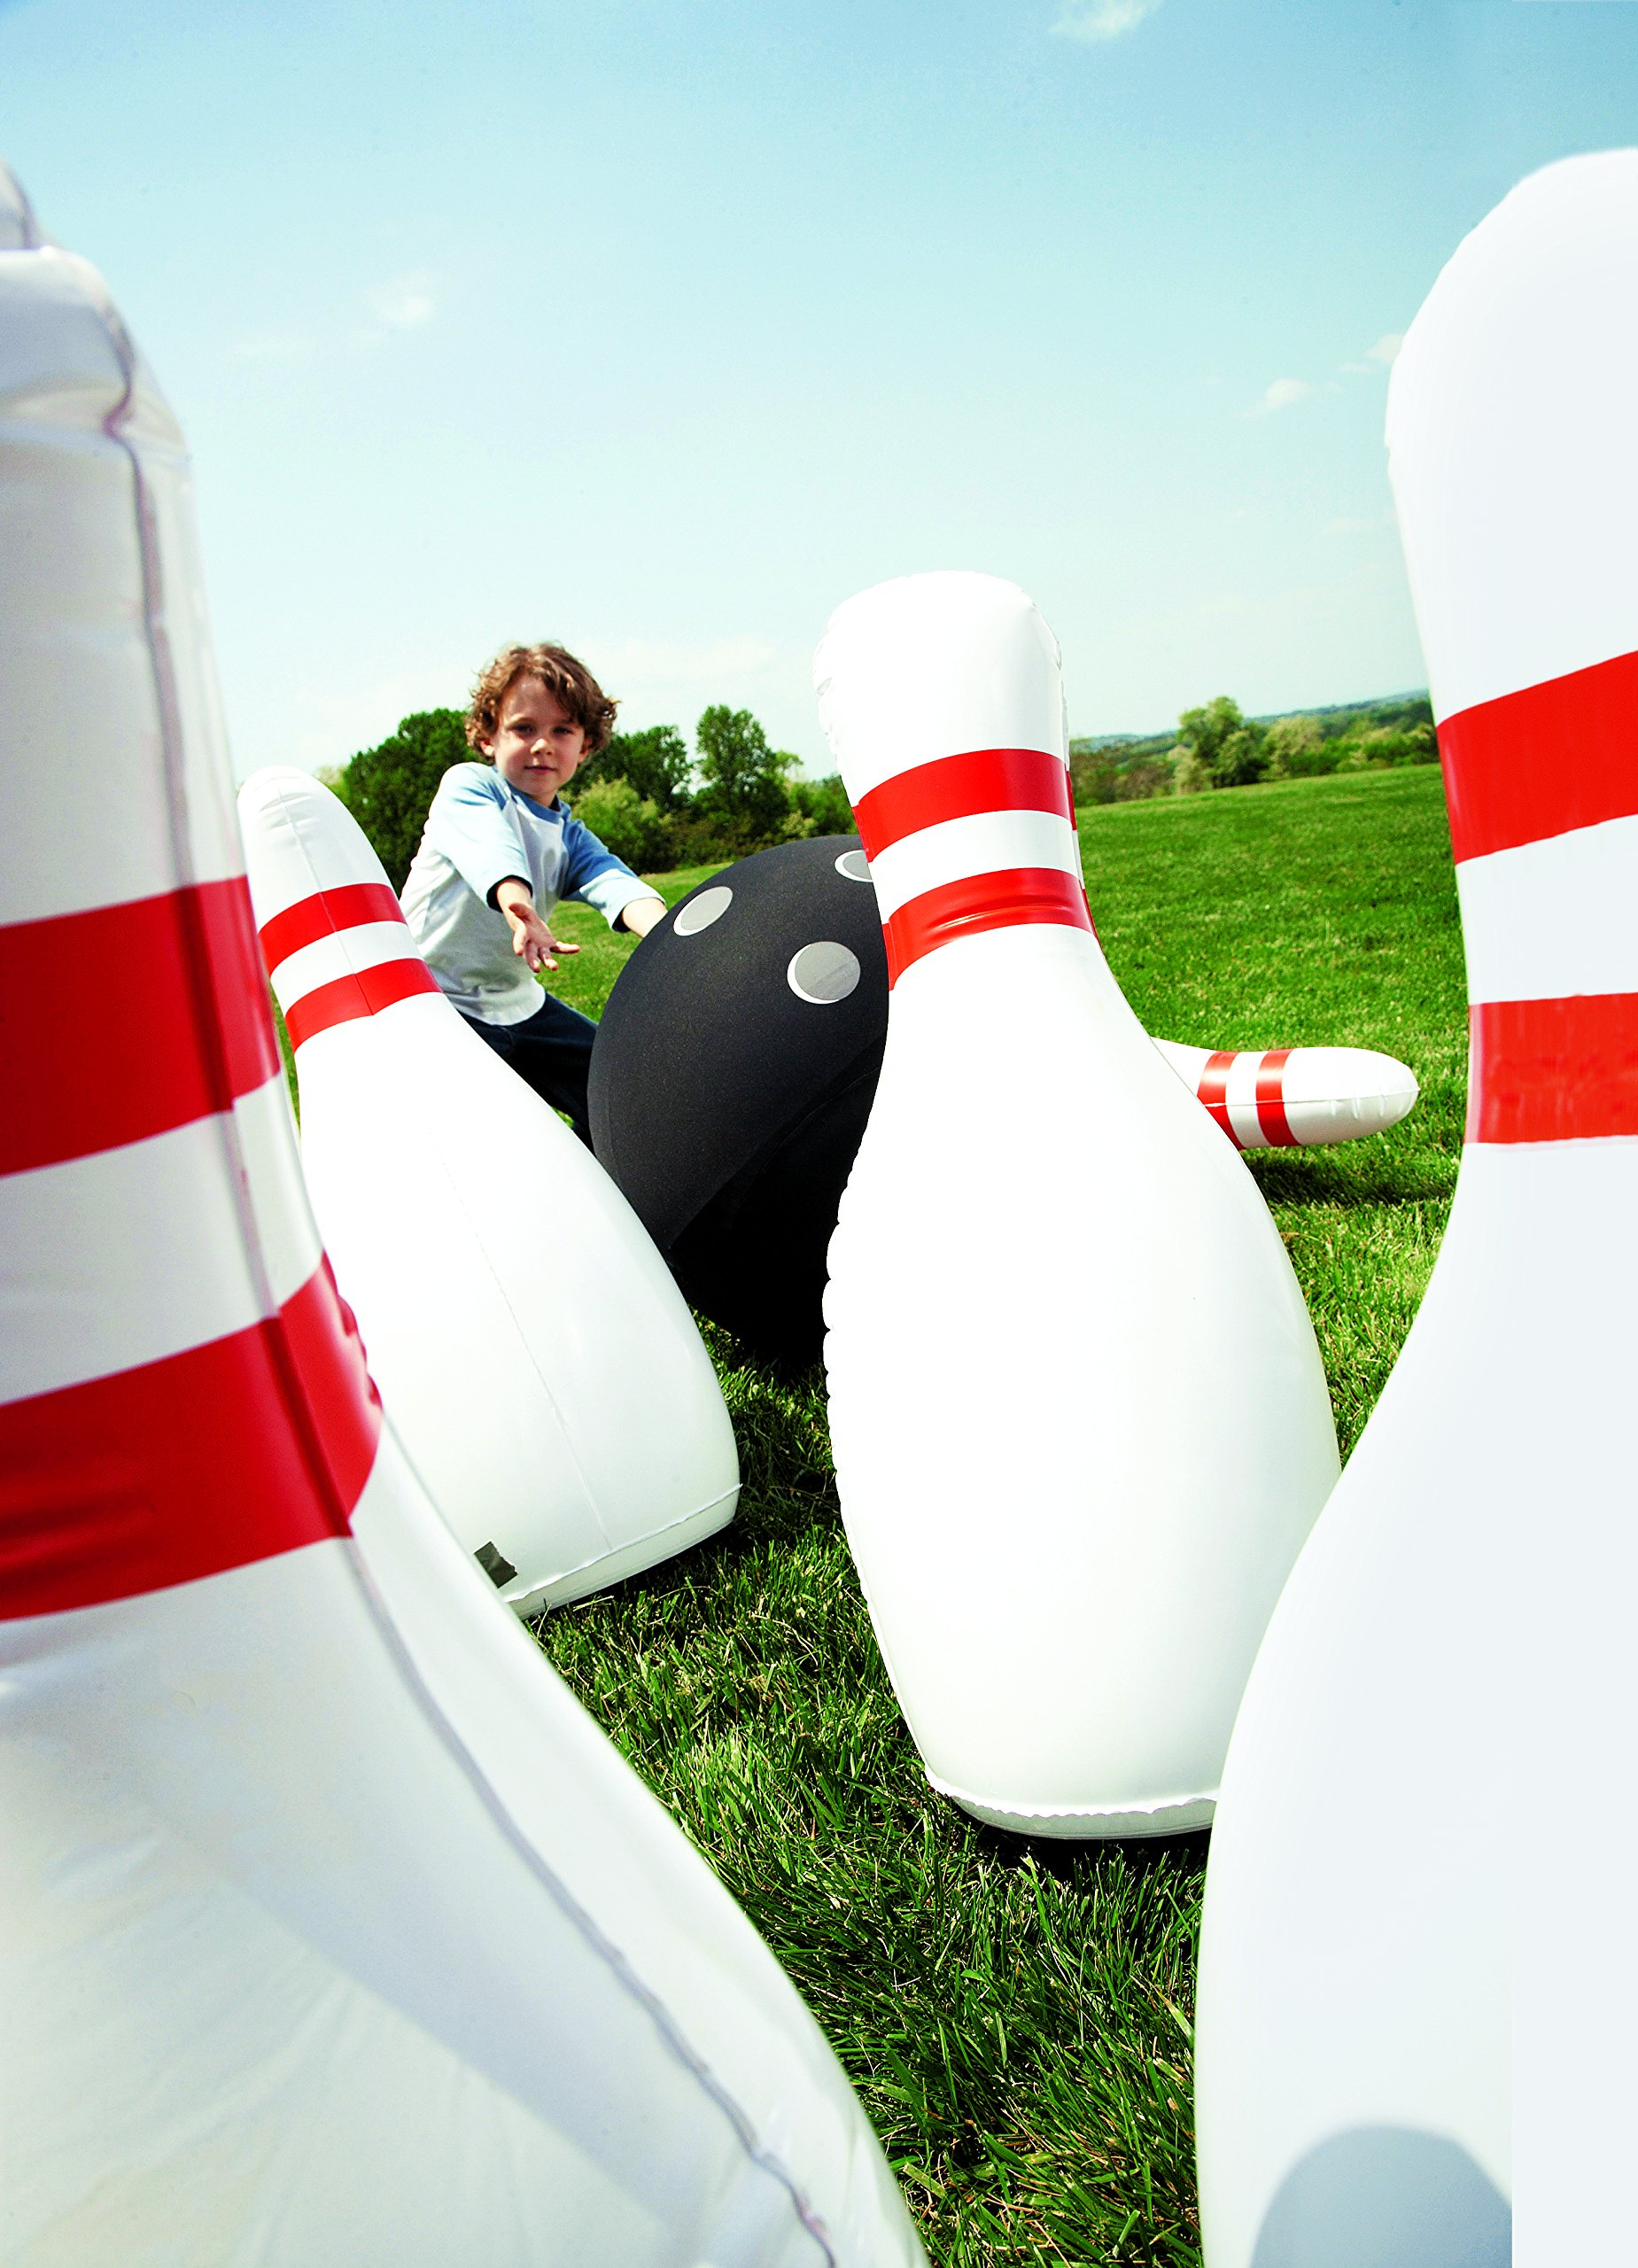 HearthSong Giant Inflatable Bowling Game – Oversized Outdoor Yard Games for Kids and Families – Classic Red, White, and Black – Pins Measure 29'' Tall